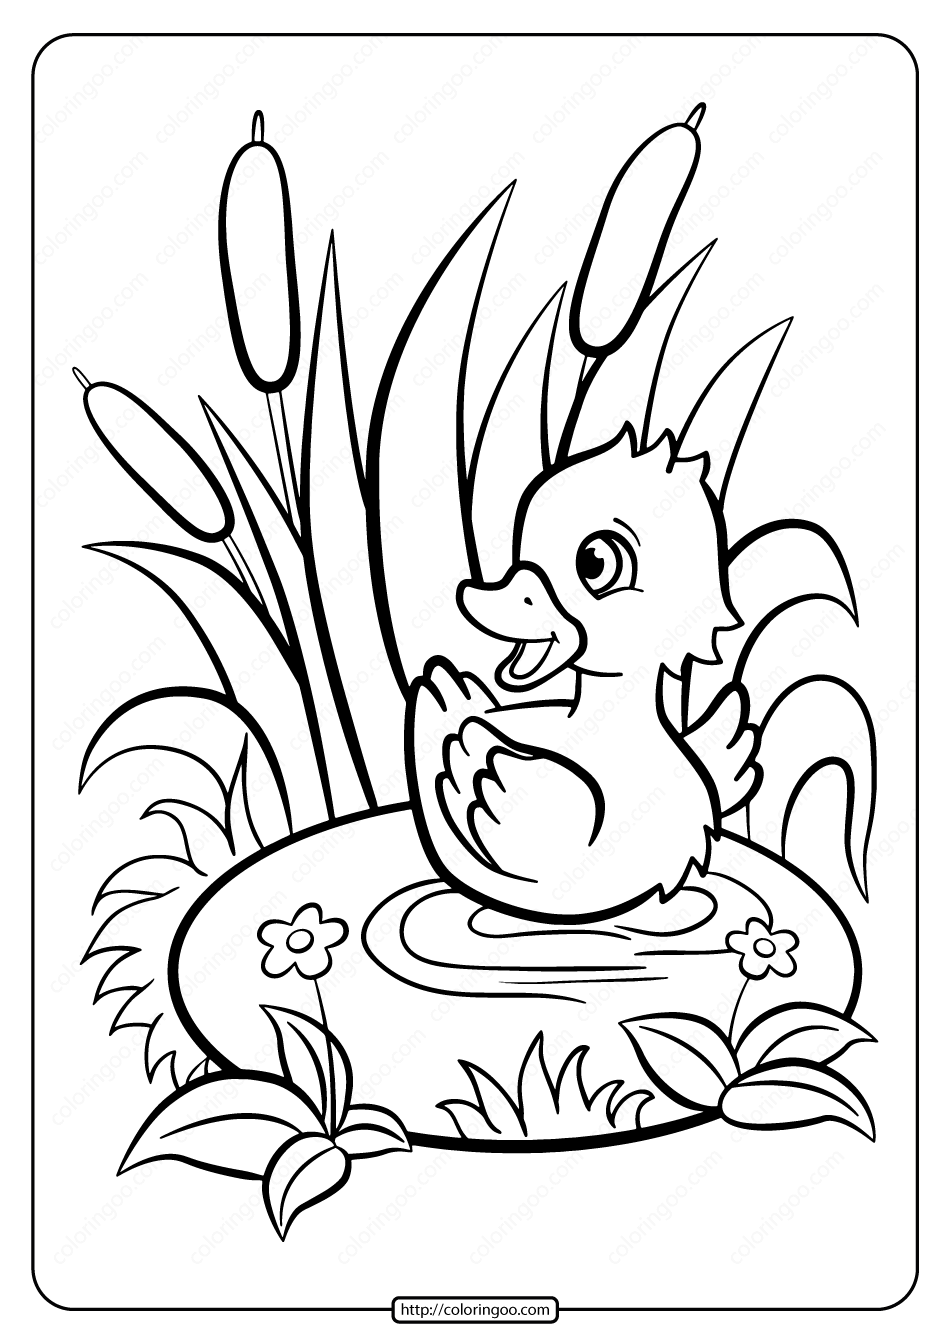 Printable Baby Duckling Pdf Coloring Page